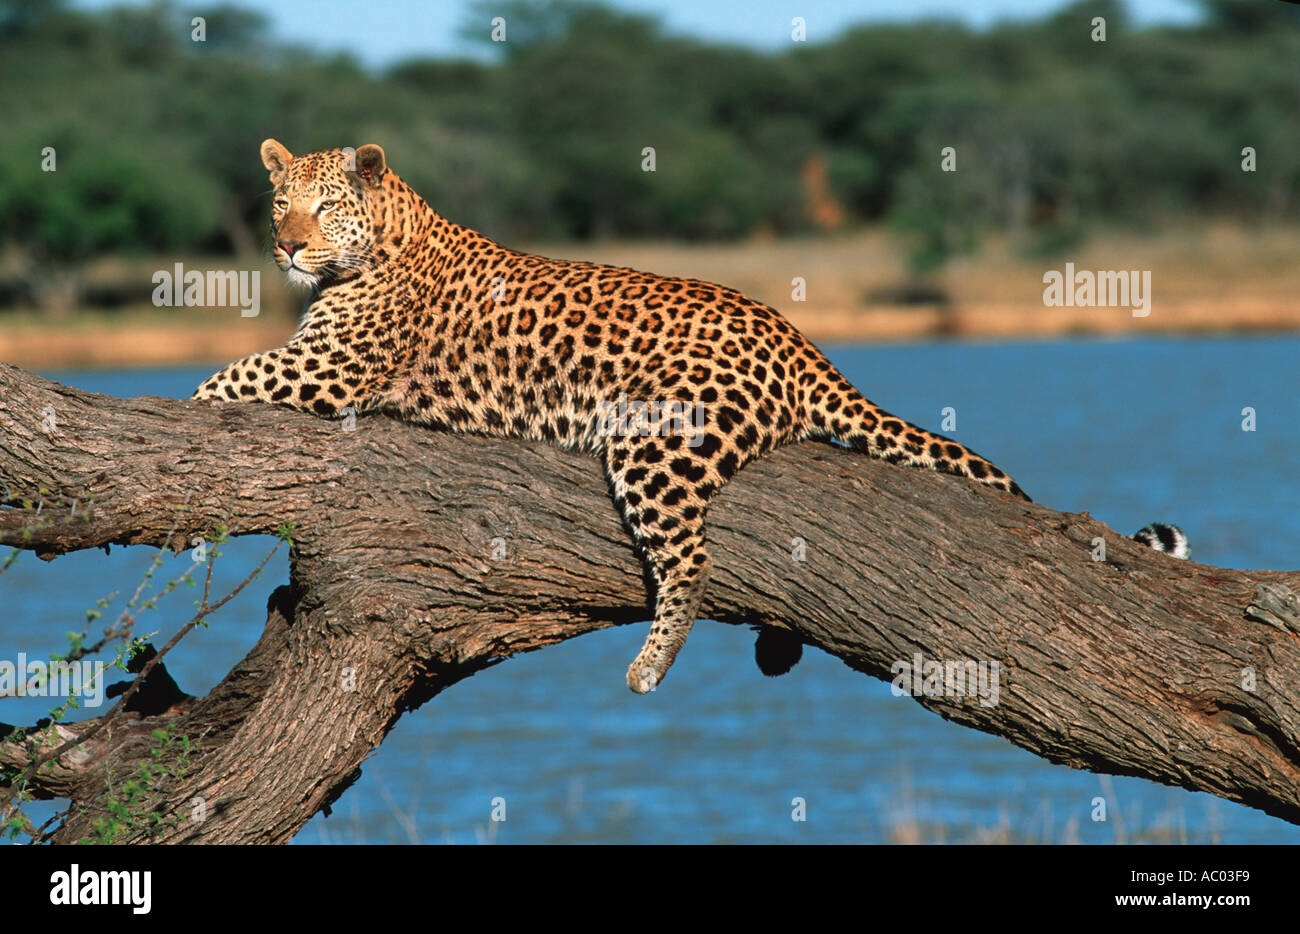 Leopard Panthera pardus Resting on tree Namibia Africa - Stock Image